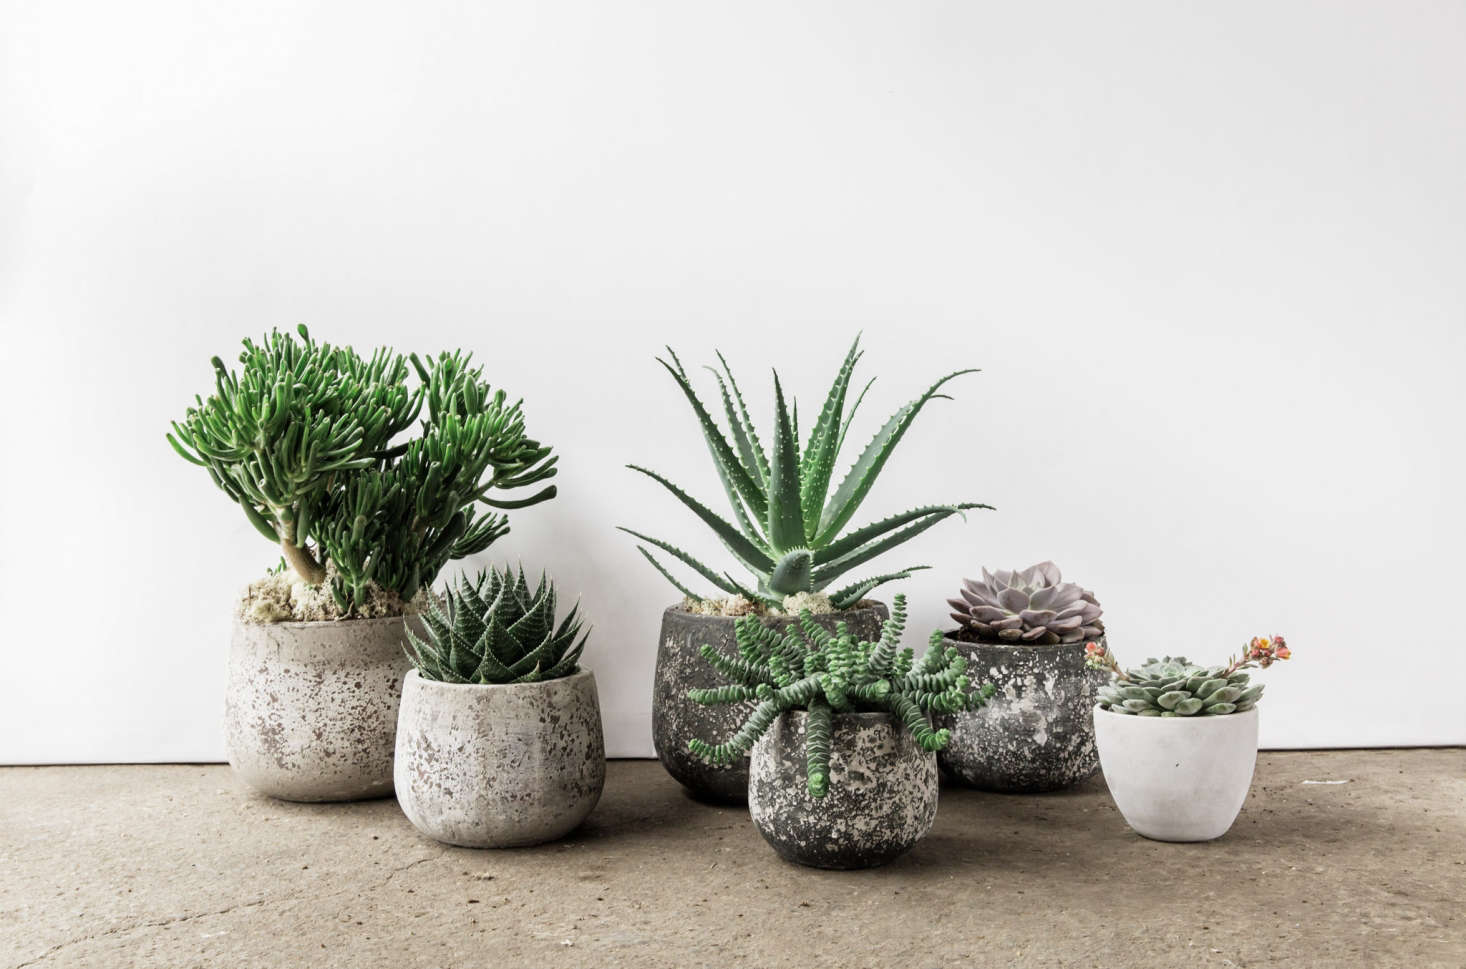 Fran tries to source ceramics from local makers. There are hand-polished concrete pots fromConpot (from £, depending on size) and beautiful small ceramic pots and bowls from Charlotte Grinling and Gareth Thomas.